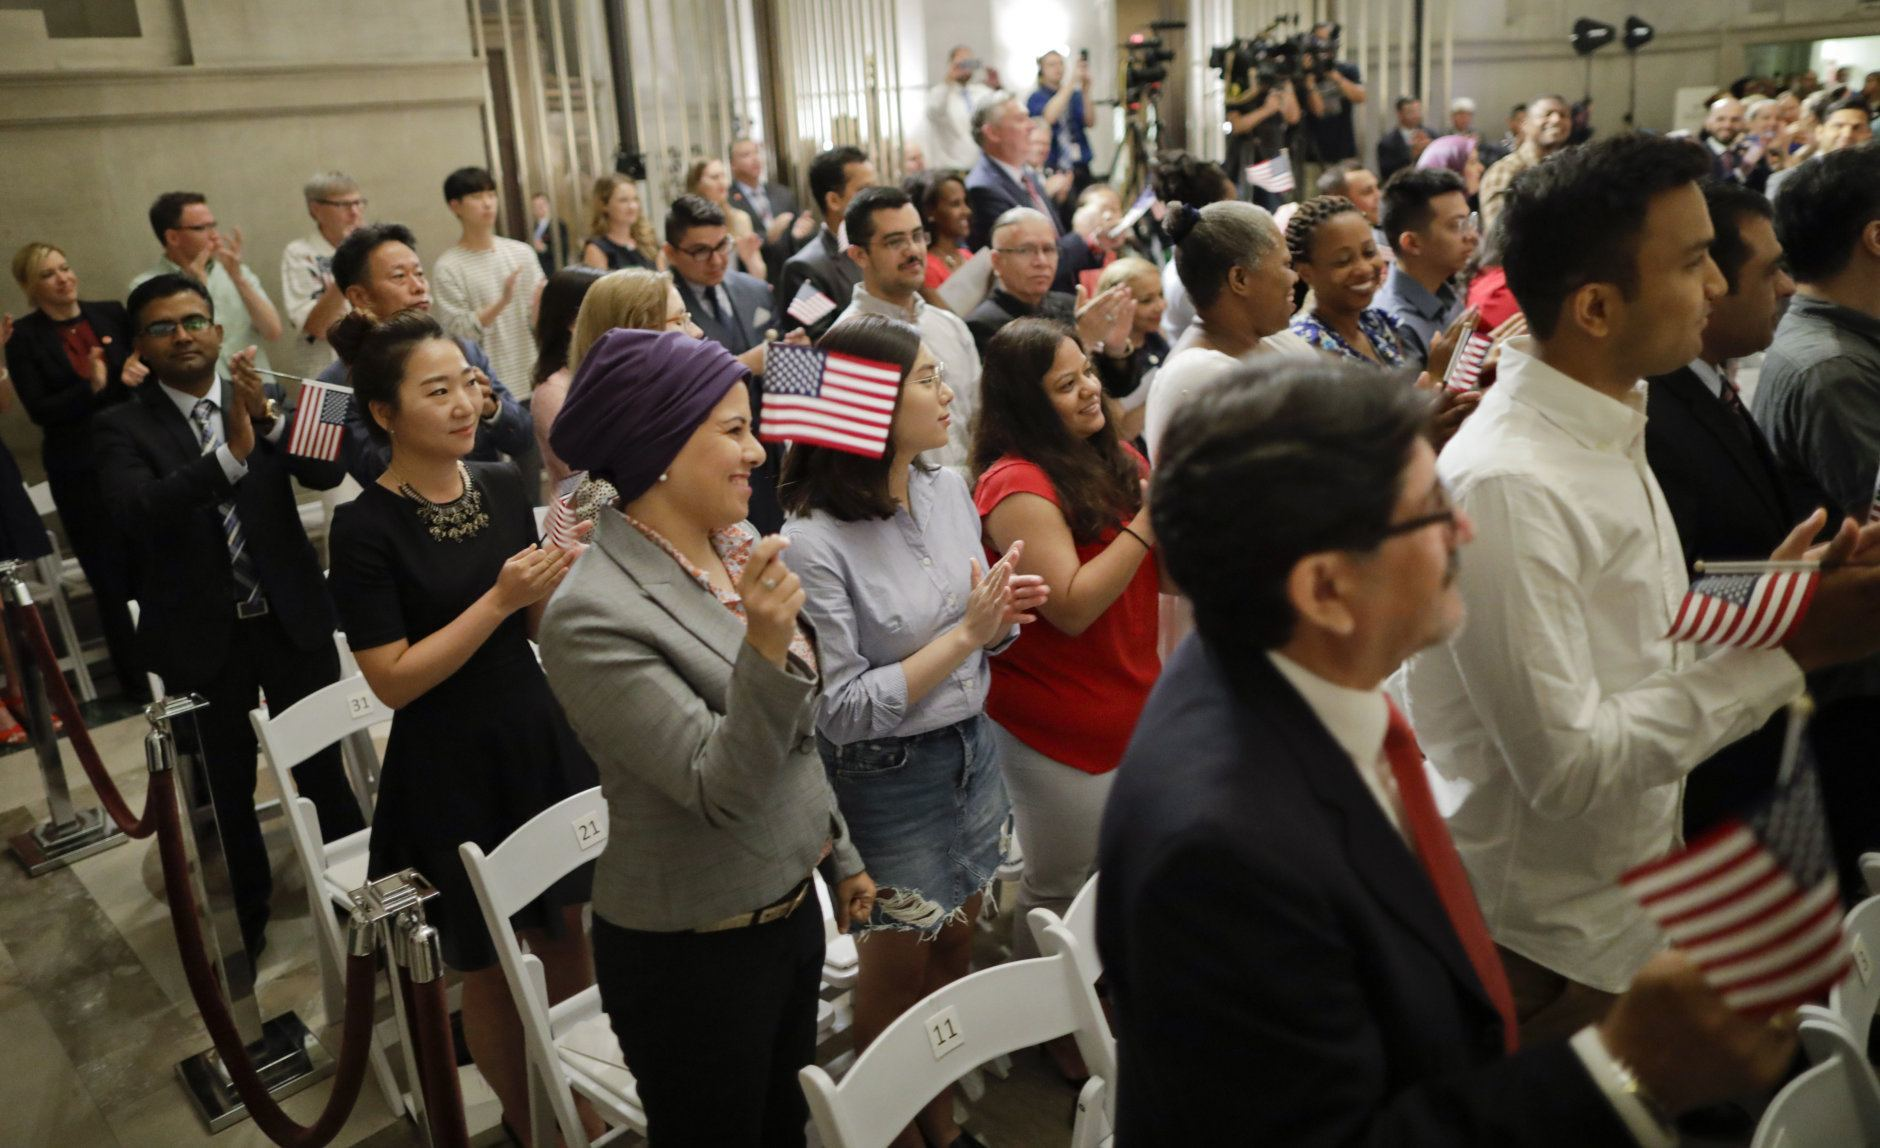 People begin celebrate after taking the Oath of Allegiance during a naturalization ceremony in celebration of Independence Day at the National Archives in Washington, Thursday, July 4, 2019. (AP Photo/Pablo Martinez Monsivais)